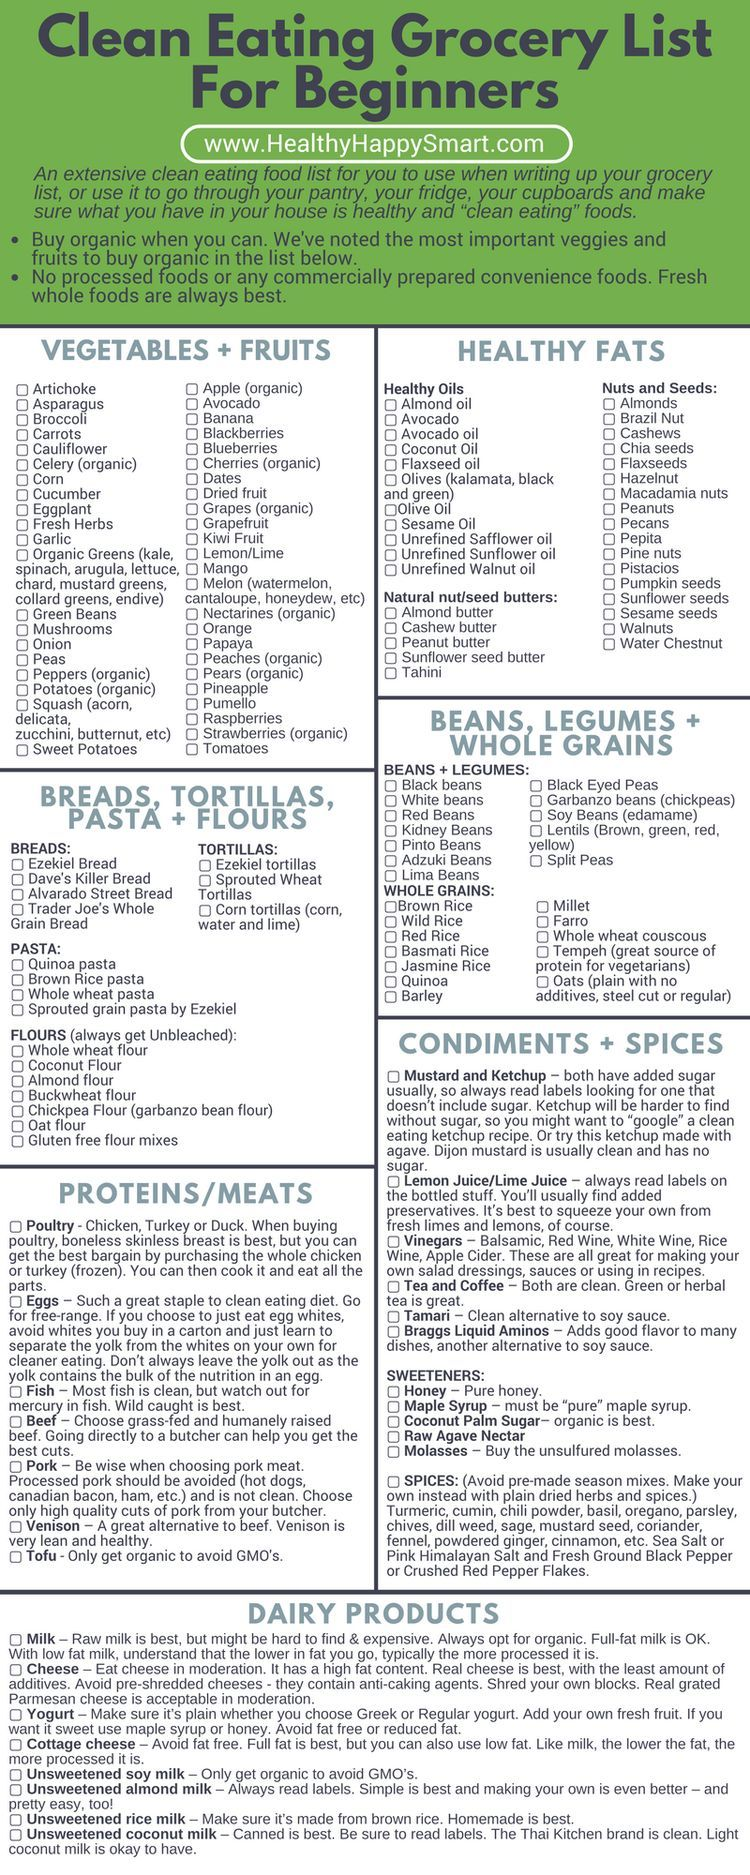 Clean Eating Grocery List • Healthy Food List • Healthy.Happy.Smart. #naturalcures